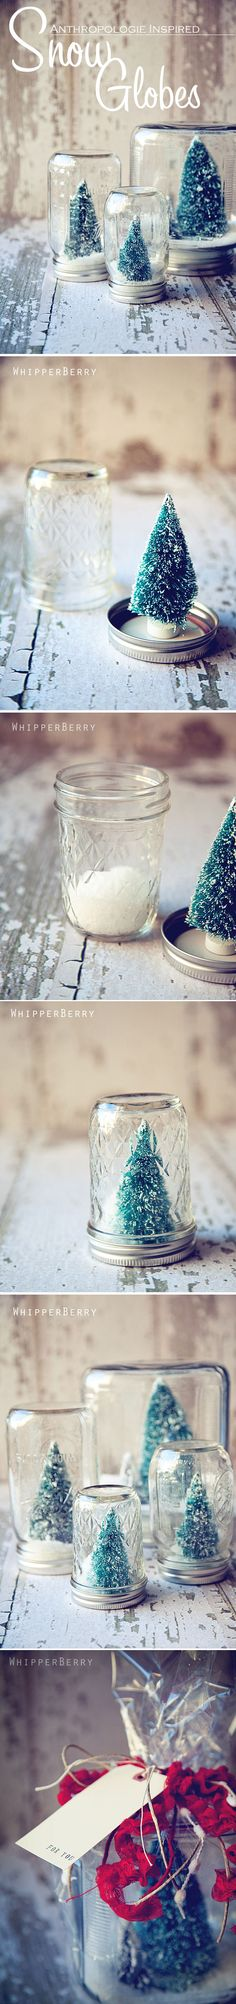 DIY Snow Globes Tutorial